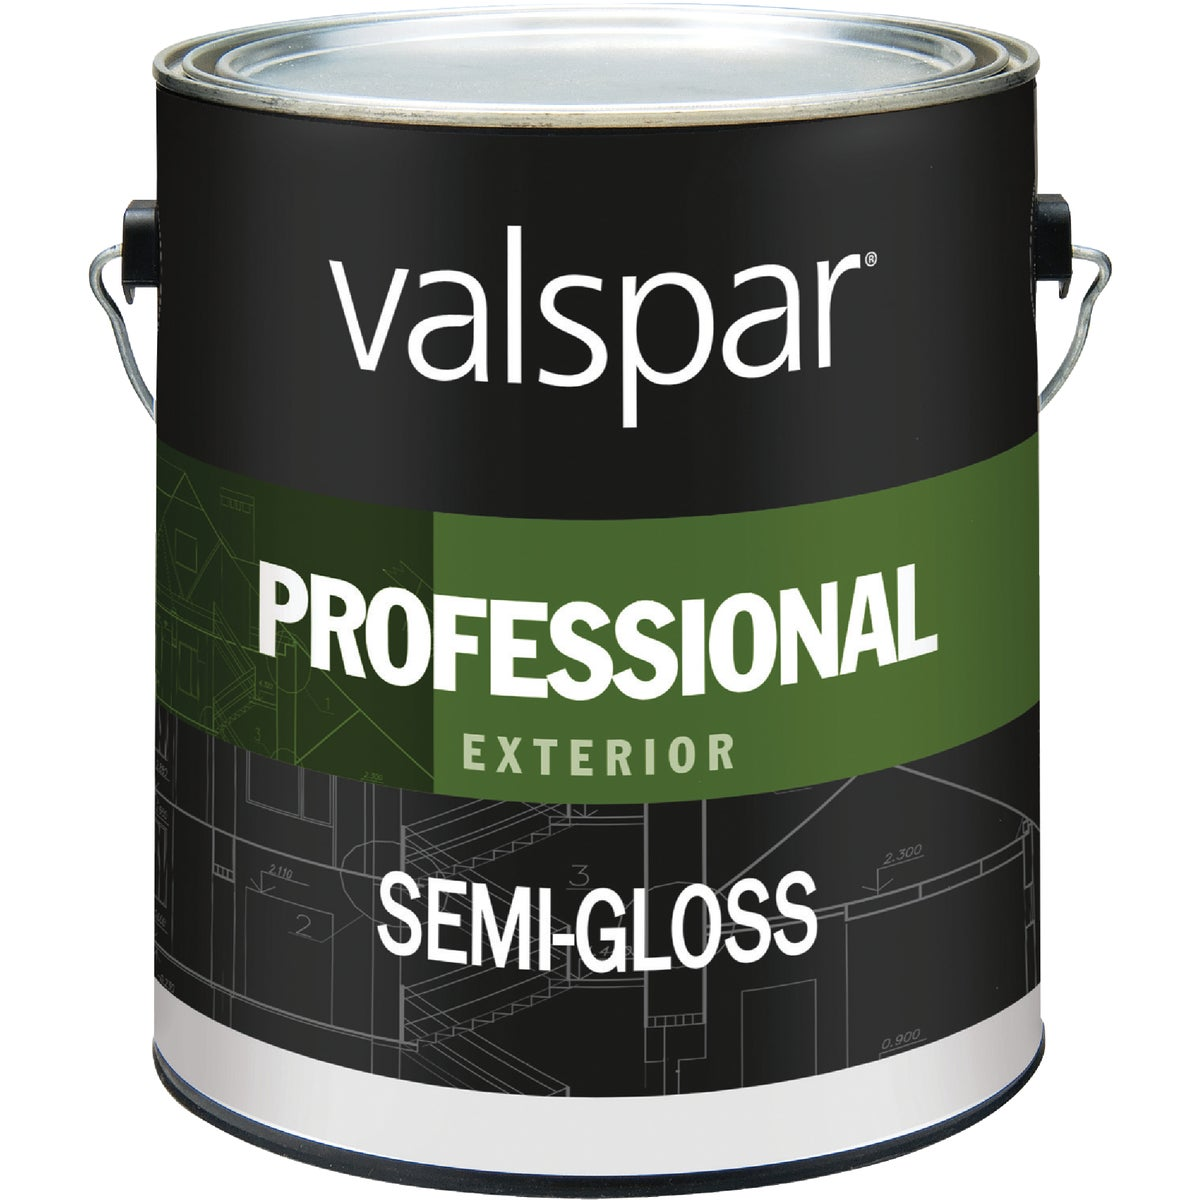 EXT S/G NEUT BASE PAINT - 045.0012914.007 by Valspar Corp